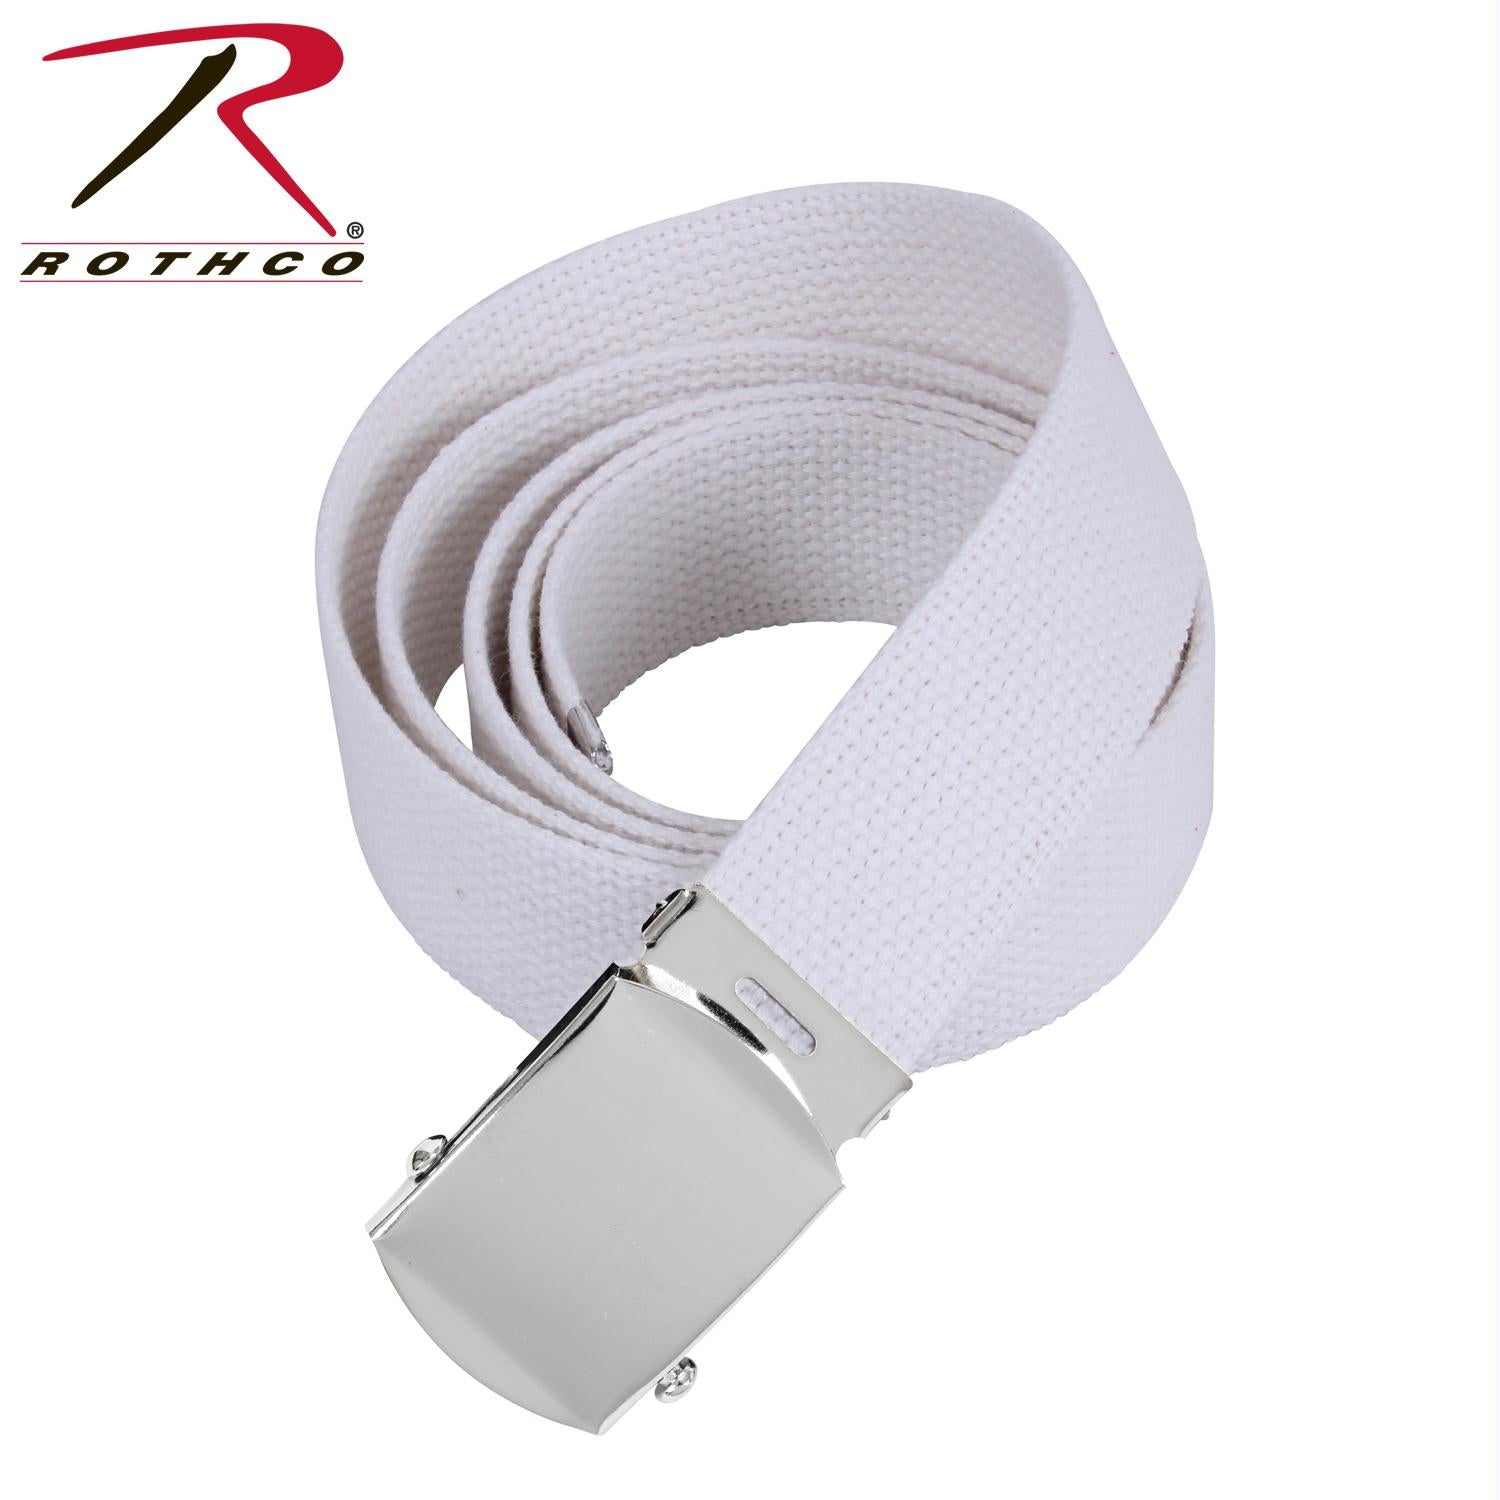 Rothco 54 Inch Military Web Belts - Chrome / White